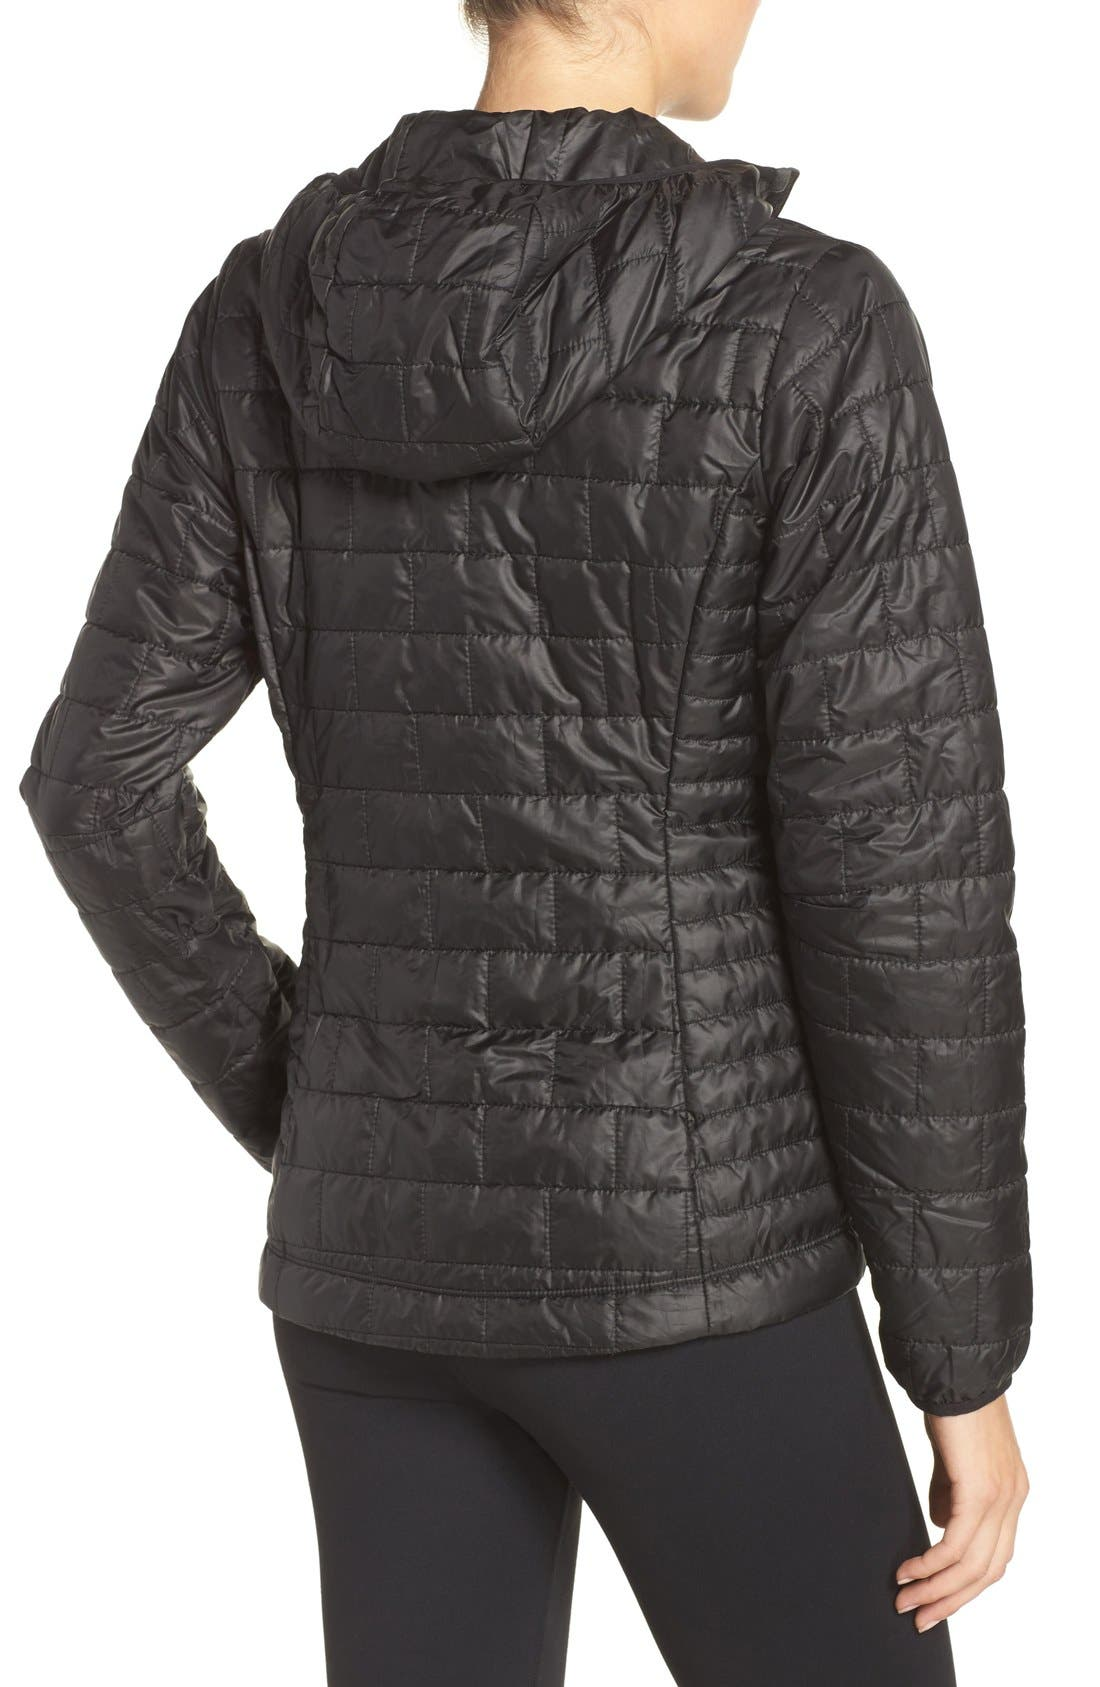 PATAGONIA, Nano Puff<sup>®</sup> Hooded Water Resistant Jacket, Alternate thumbnail 3, color, BLACK